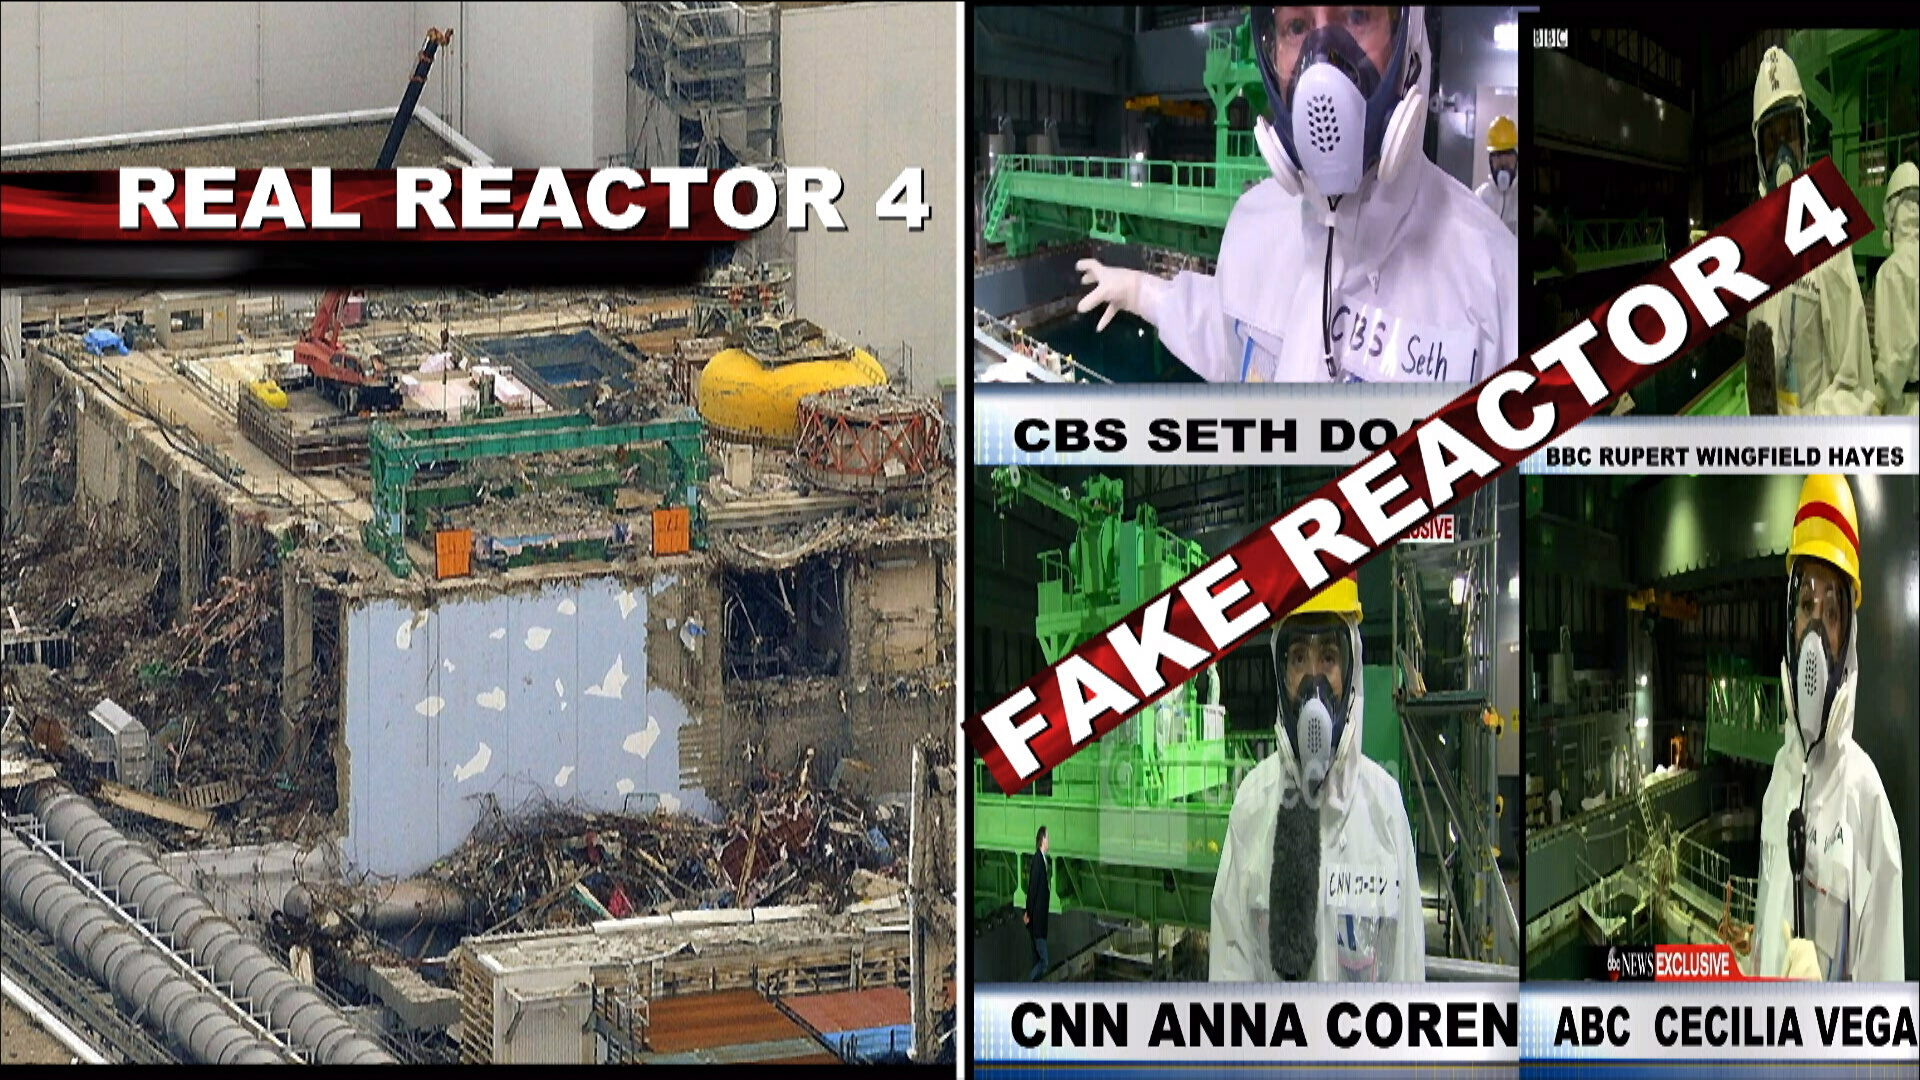 fake reactor 4.fukushima